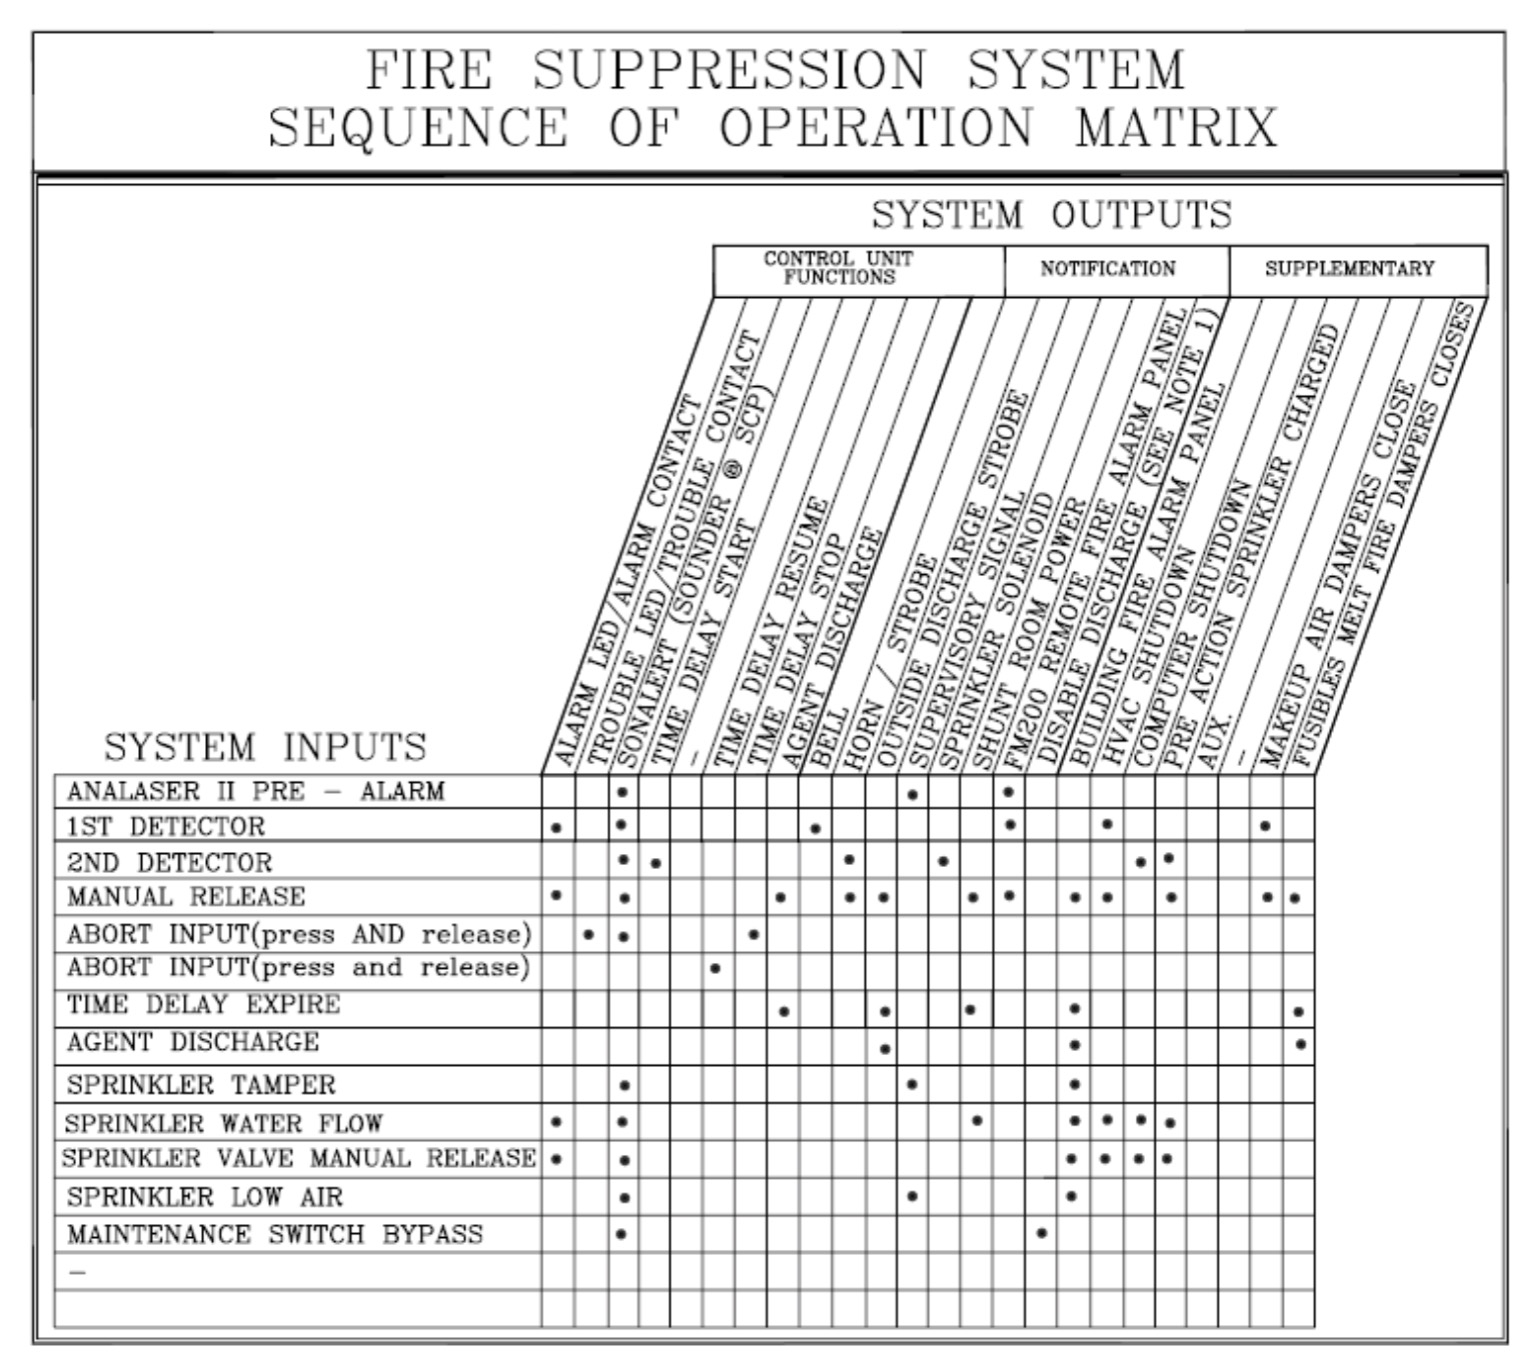 widar fire protectionthe following matrix correlates the inputs to the outputs of the control panel